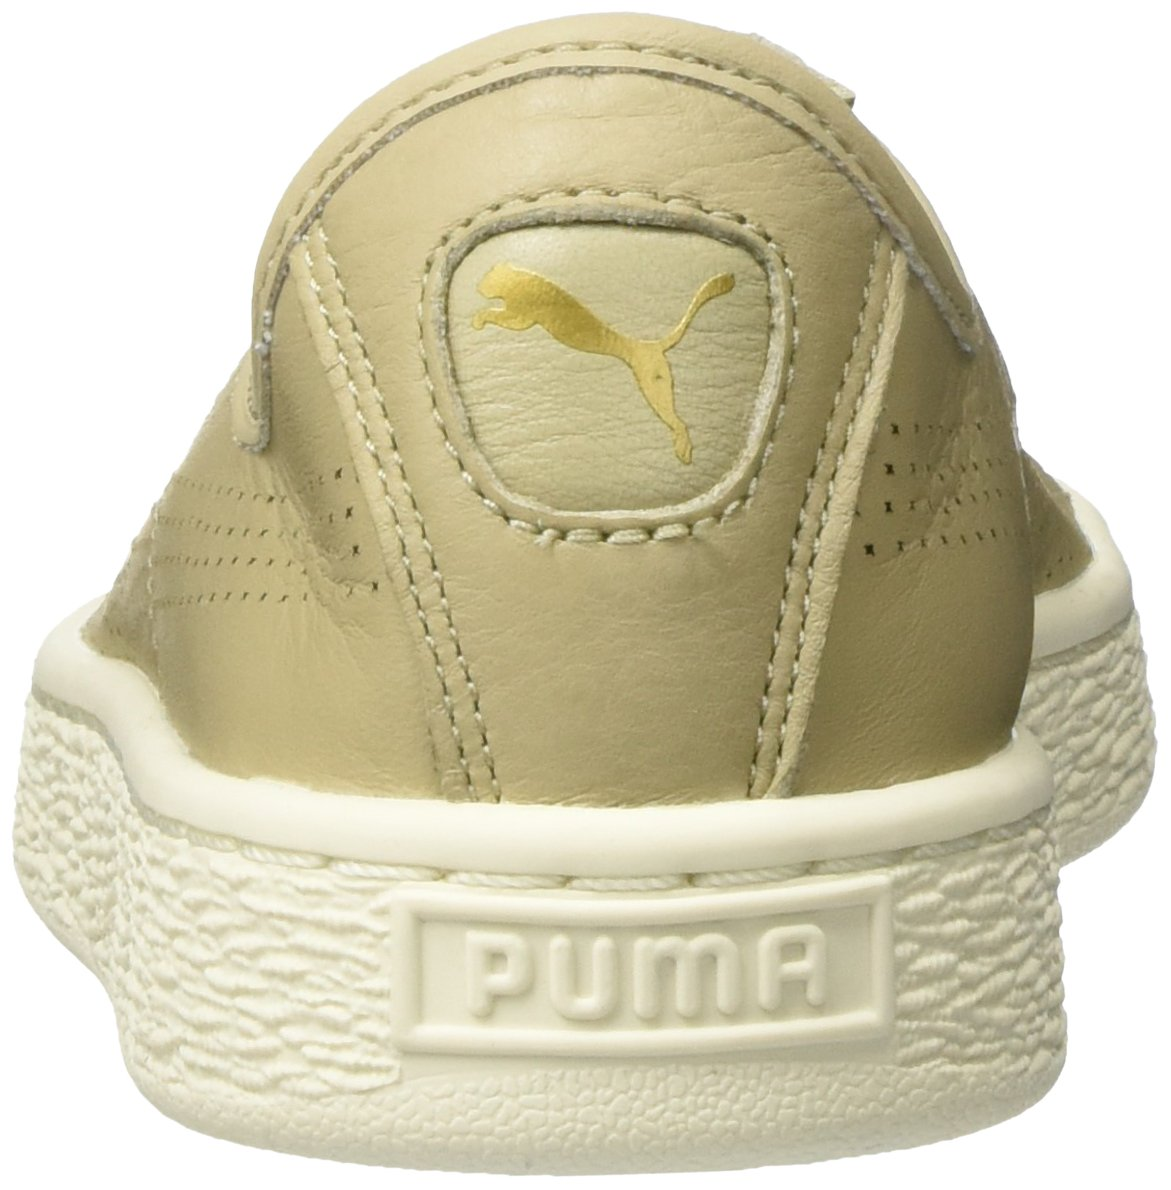 Gentlemen/Ladies Puma Unisex Unisex Unisex Adults' Basket Classic Soft Trainers Long-term reputation Price reduction Selling new products WV8081 241e1f